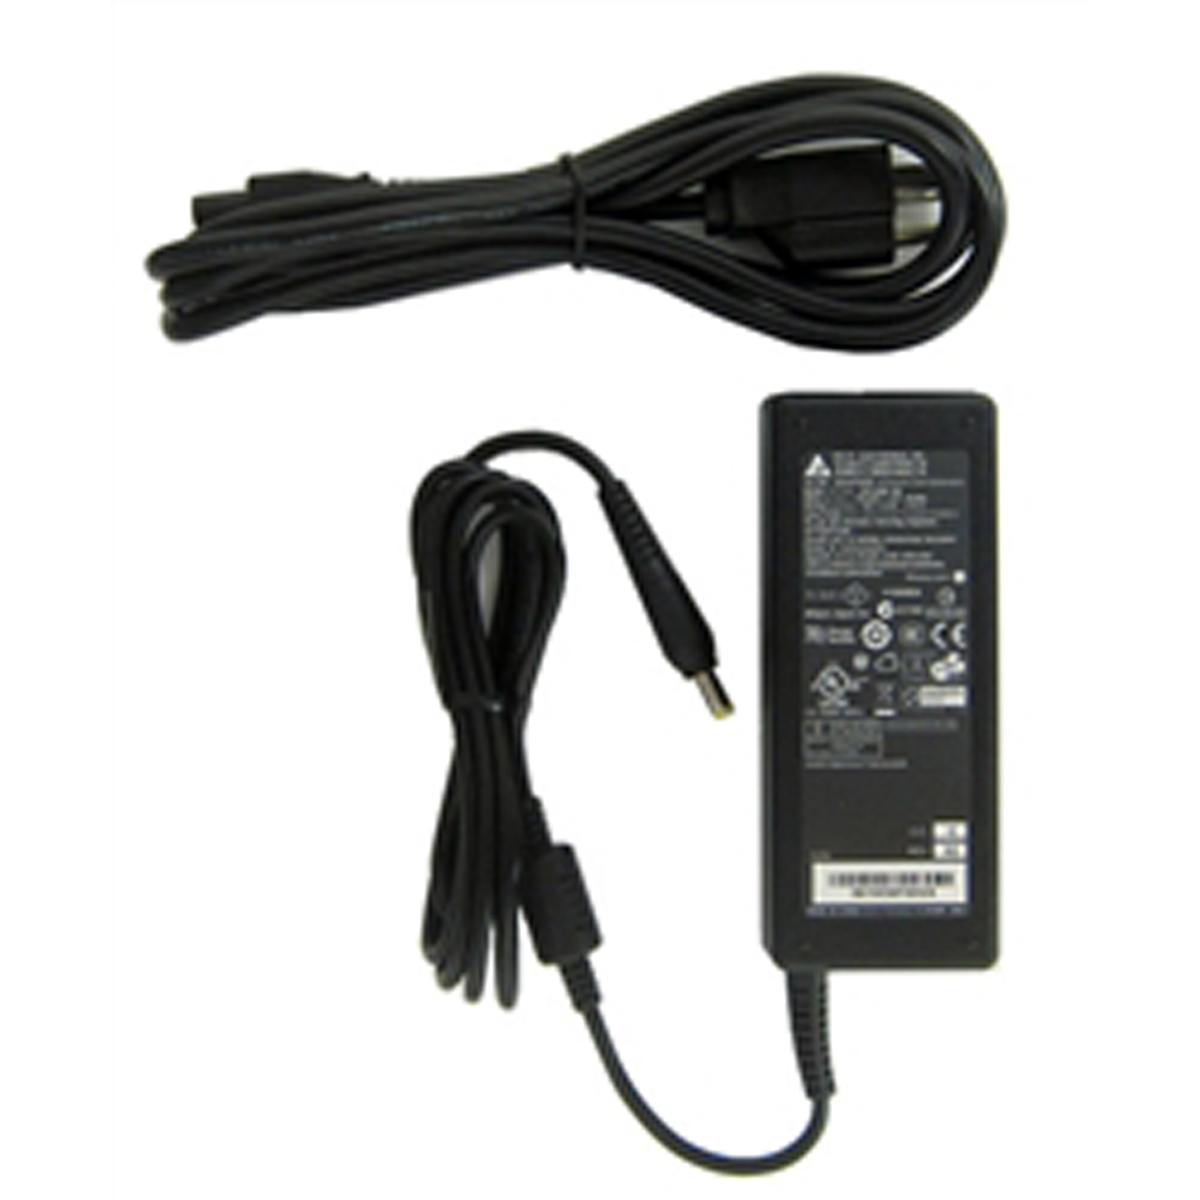 Kessil Power Supply 19V-90W for A360,A360X, H380